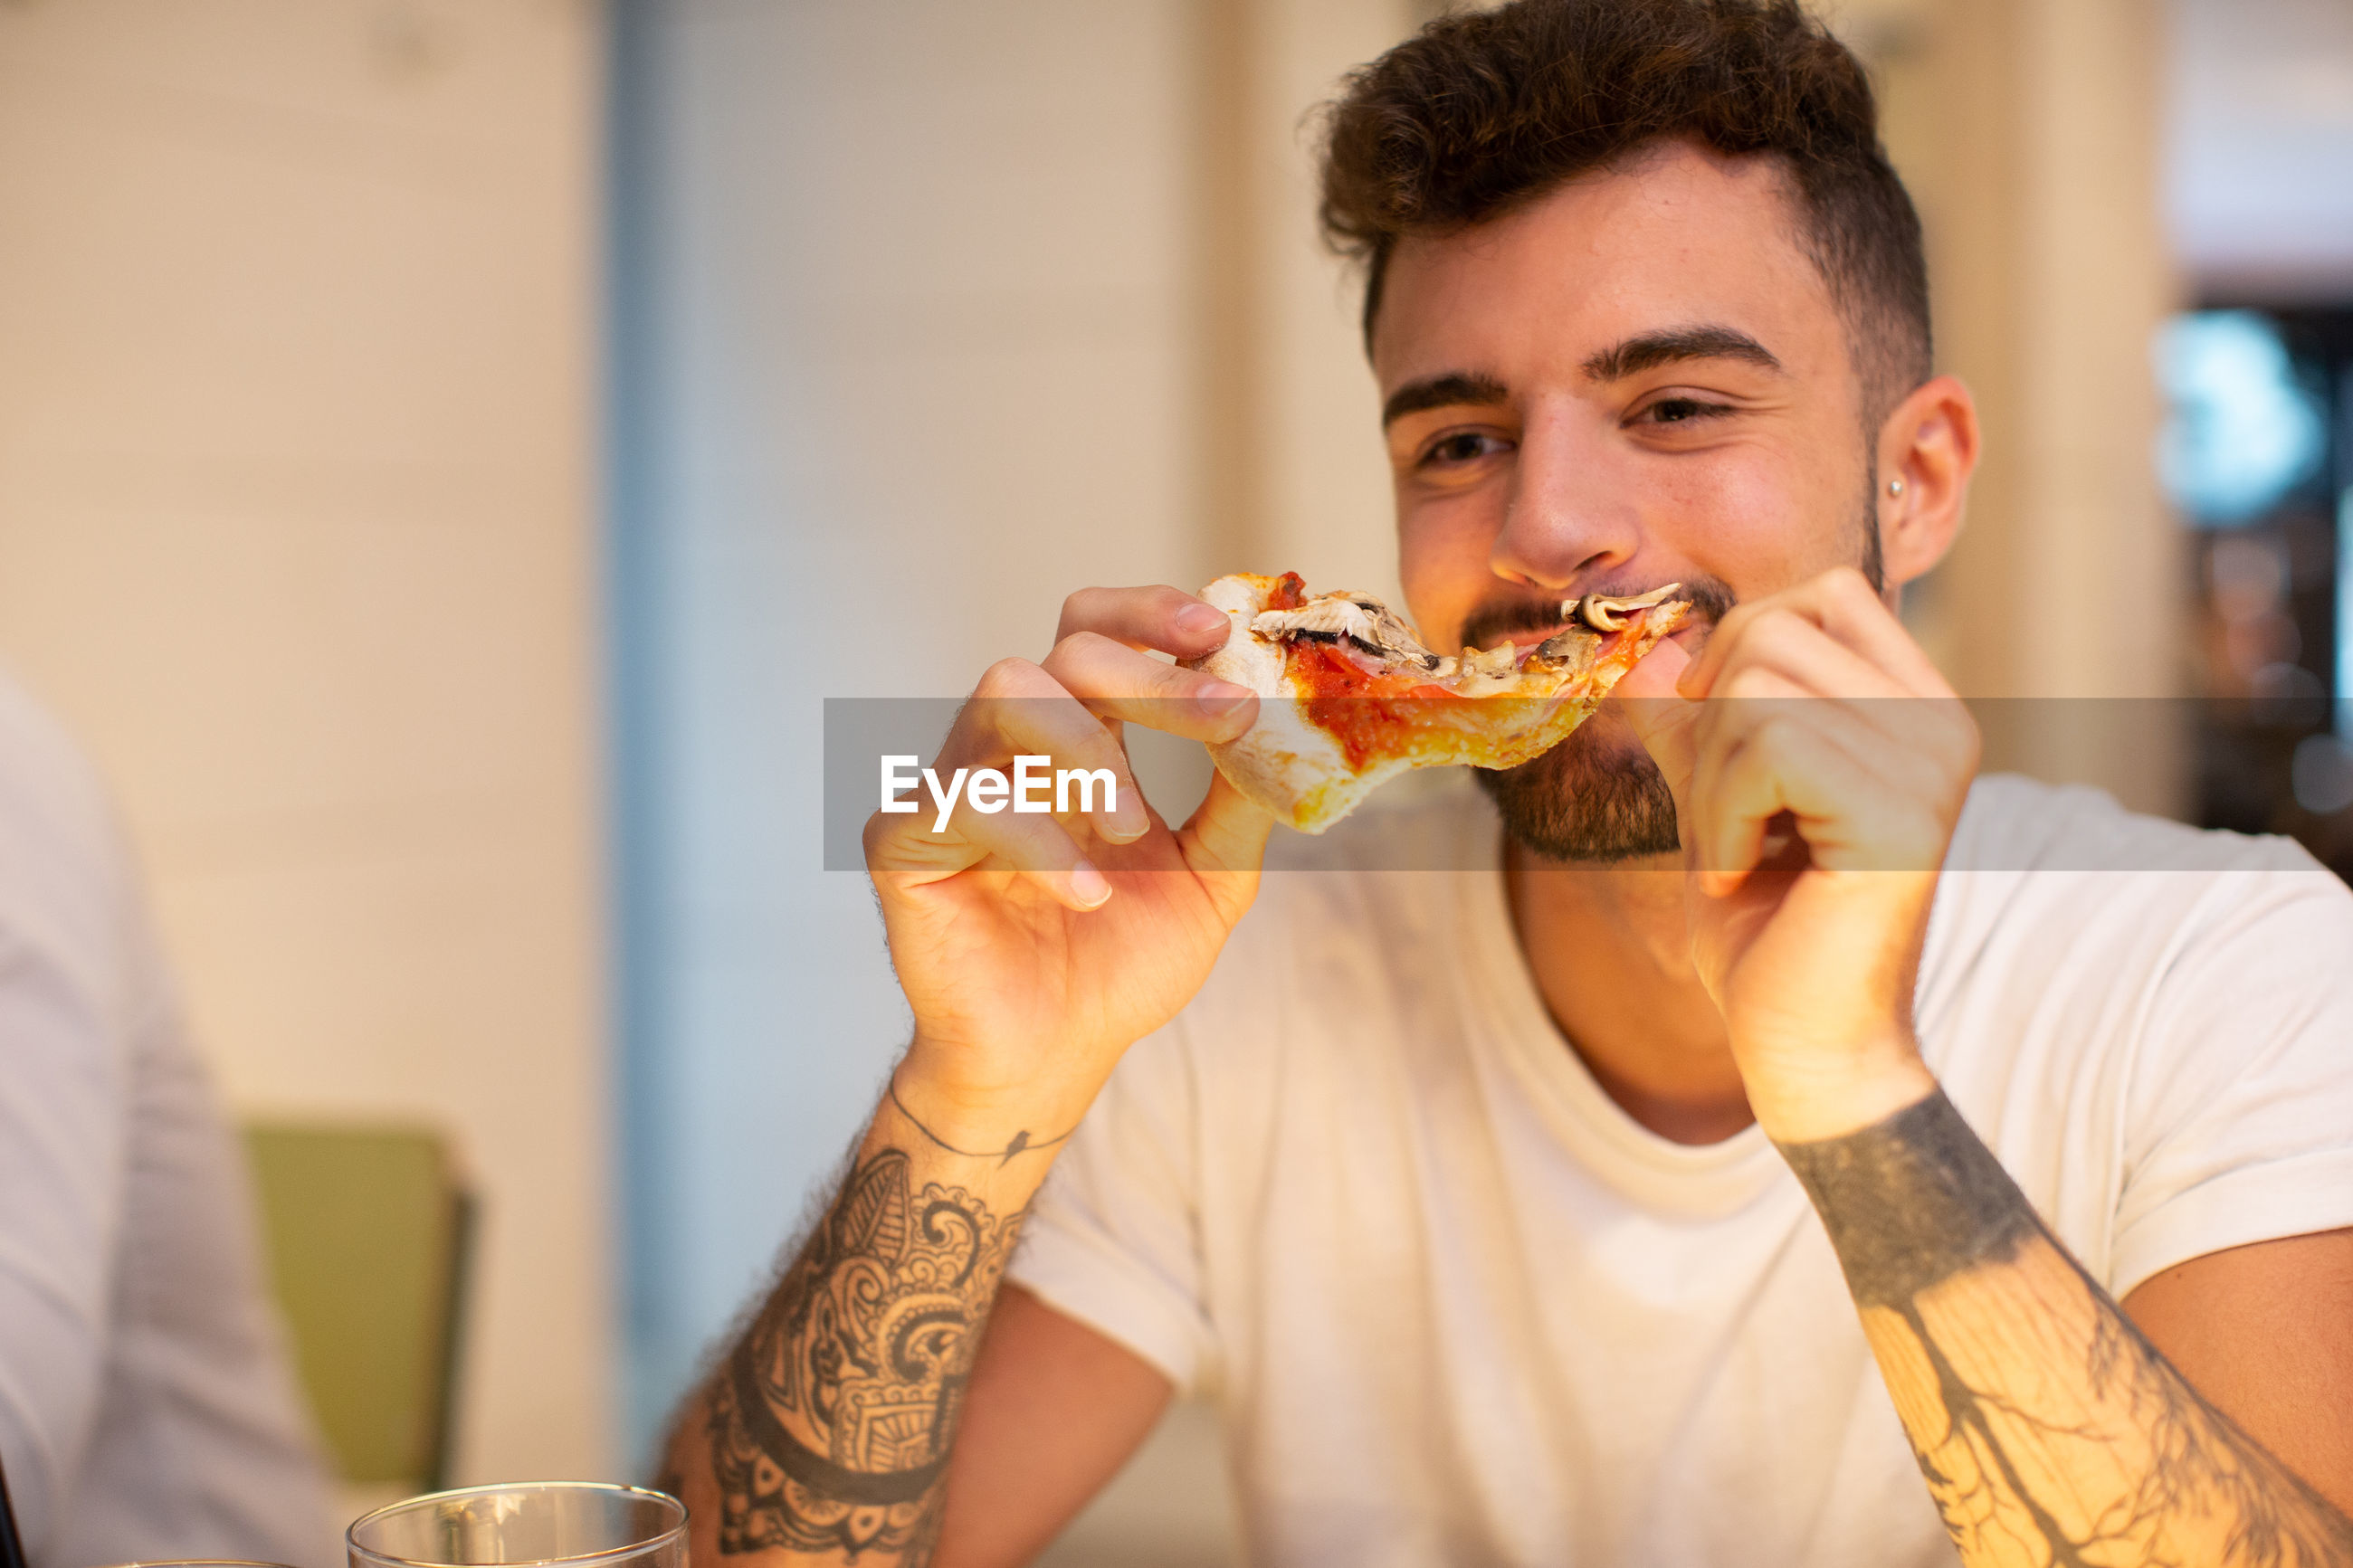 Young man eating pizza indoors